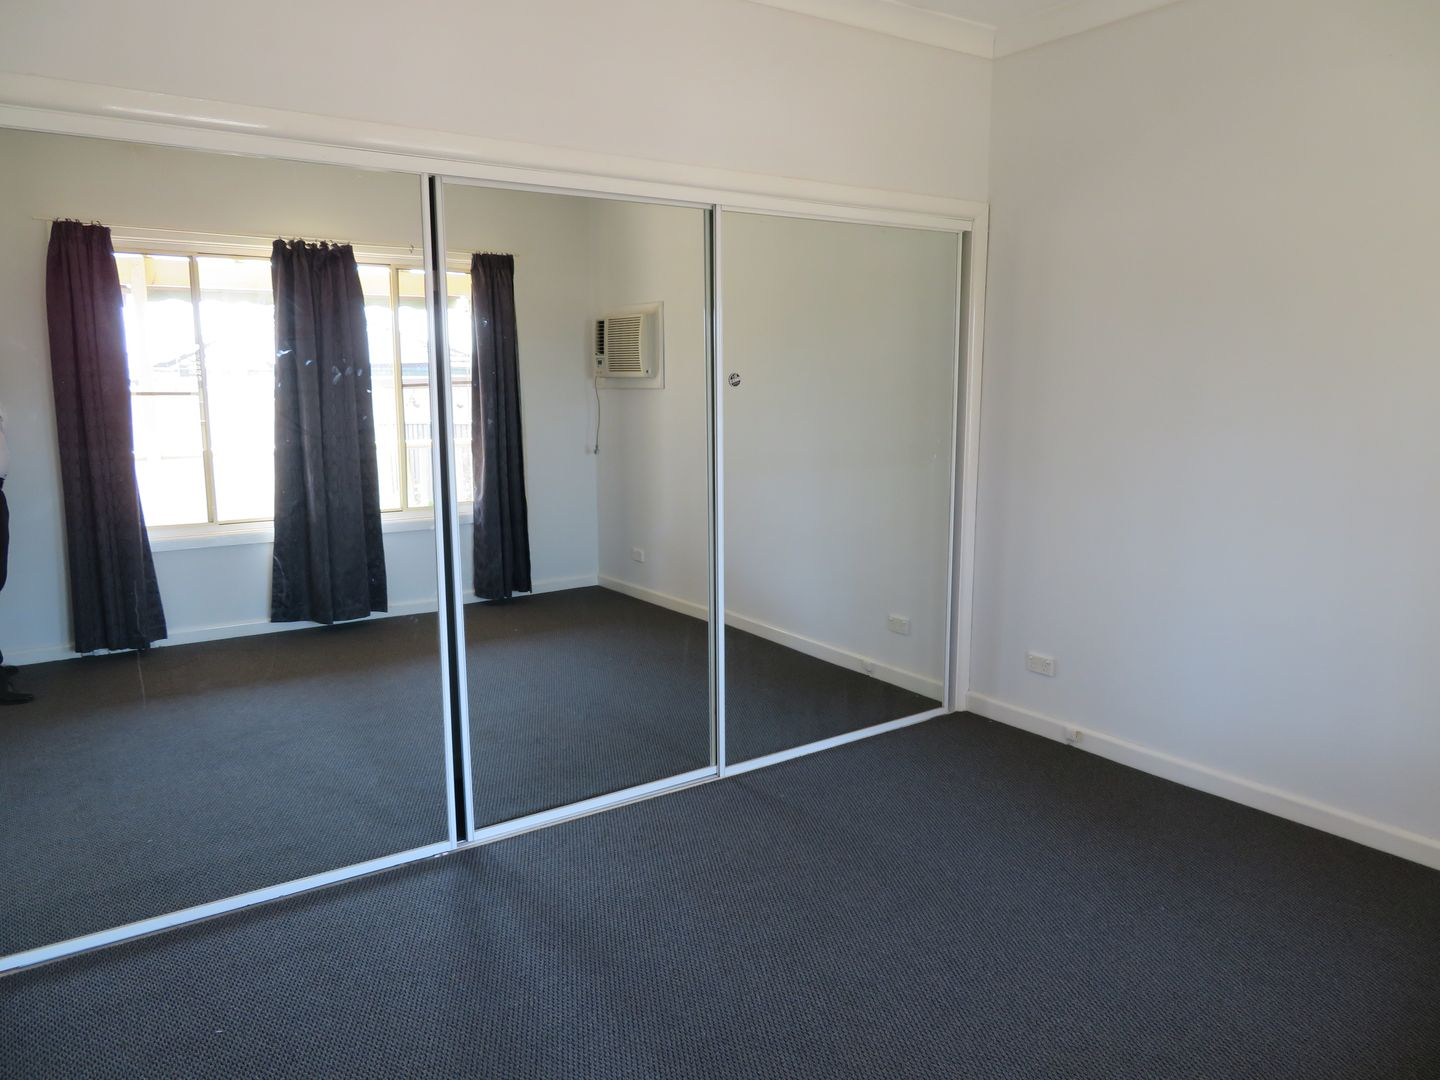 42 Charles St, Blacktown NSW 2148, Image 2